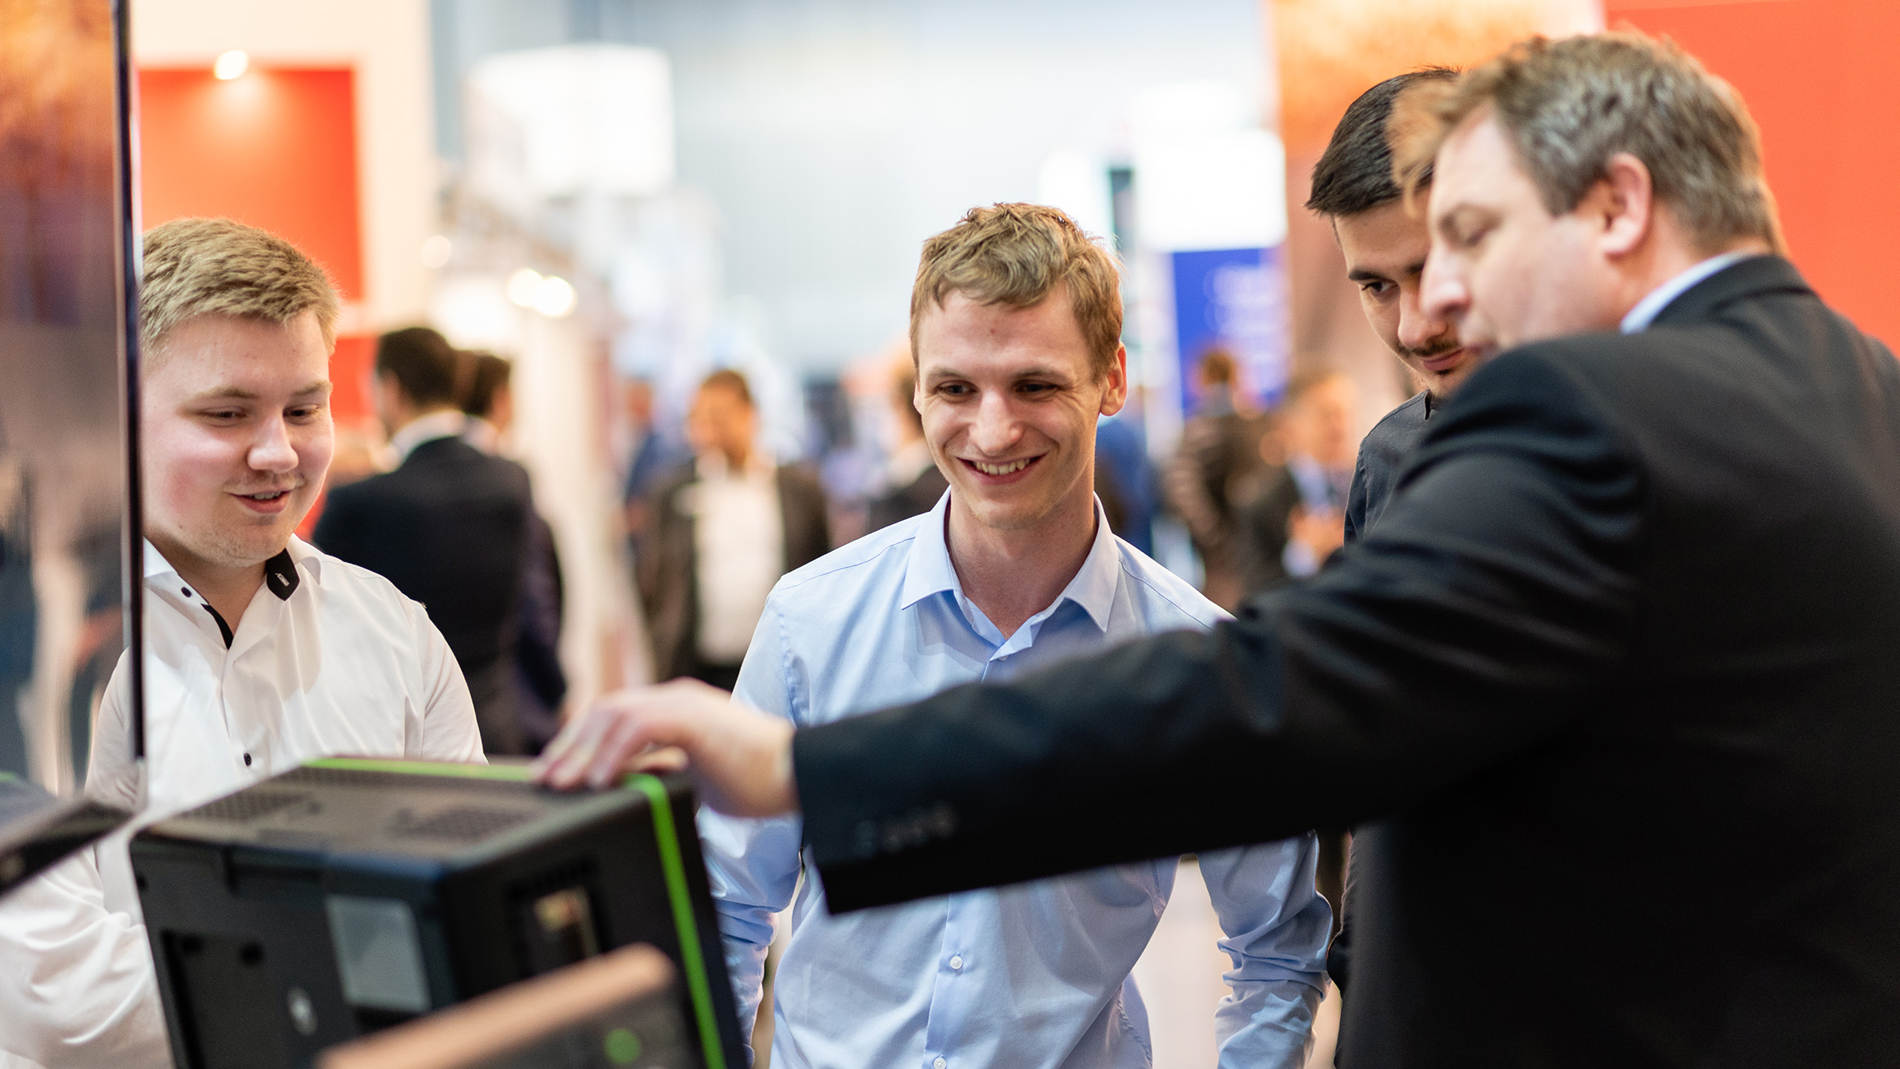 Young students at the booth of Teledyne LeCroy GmbH